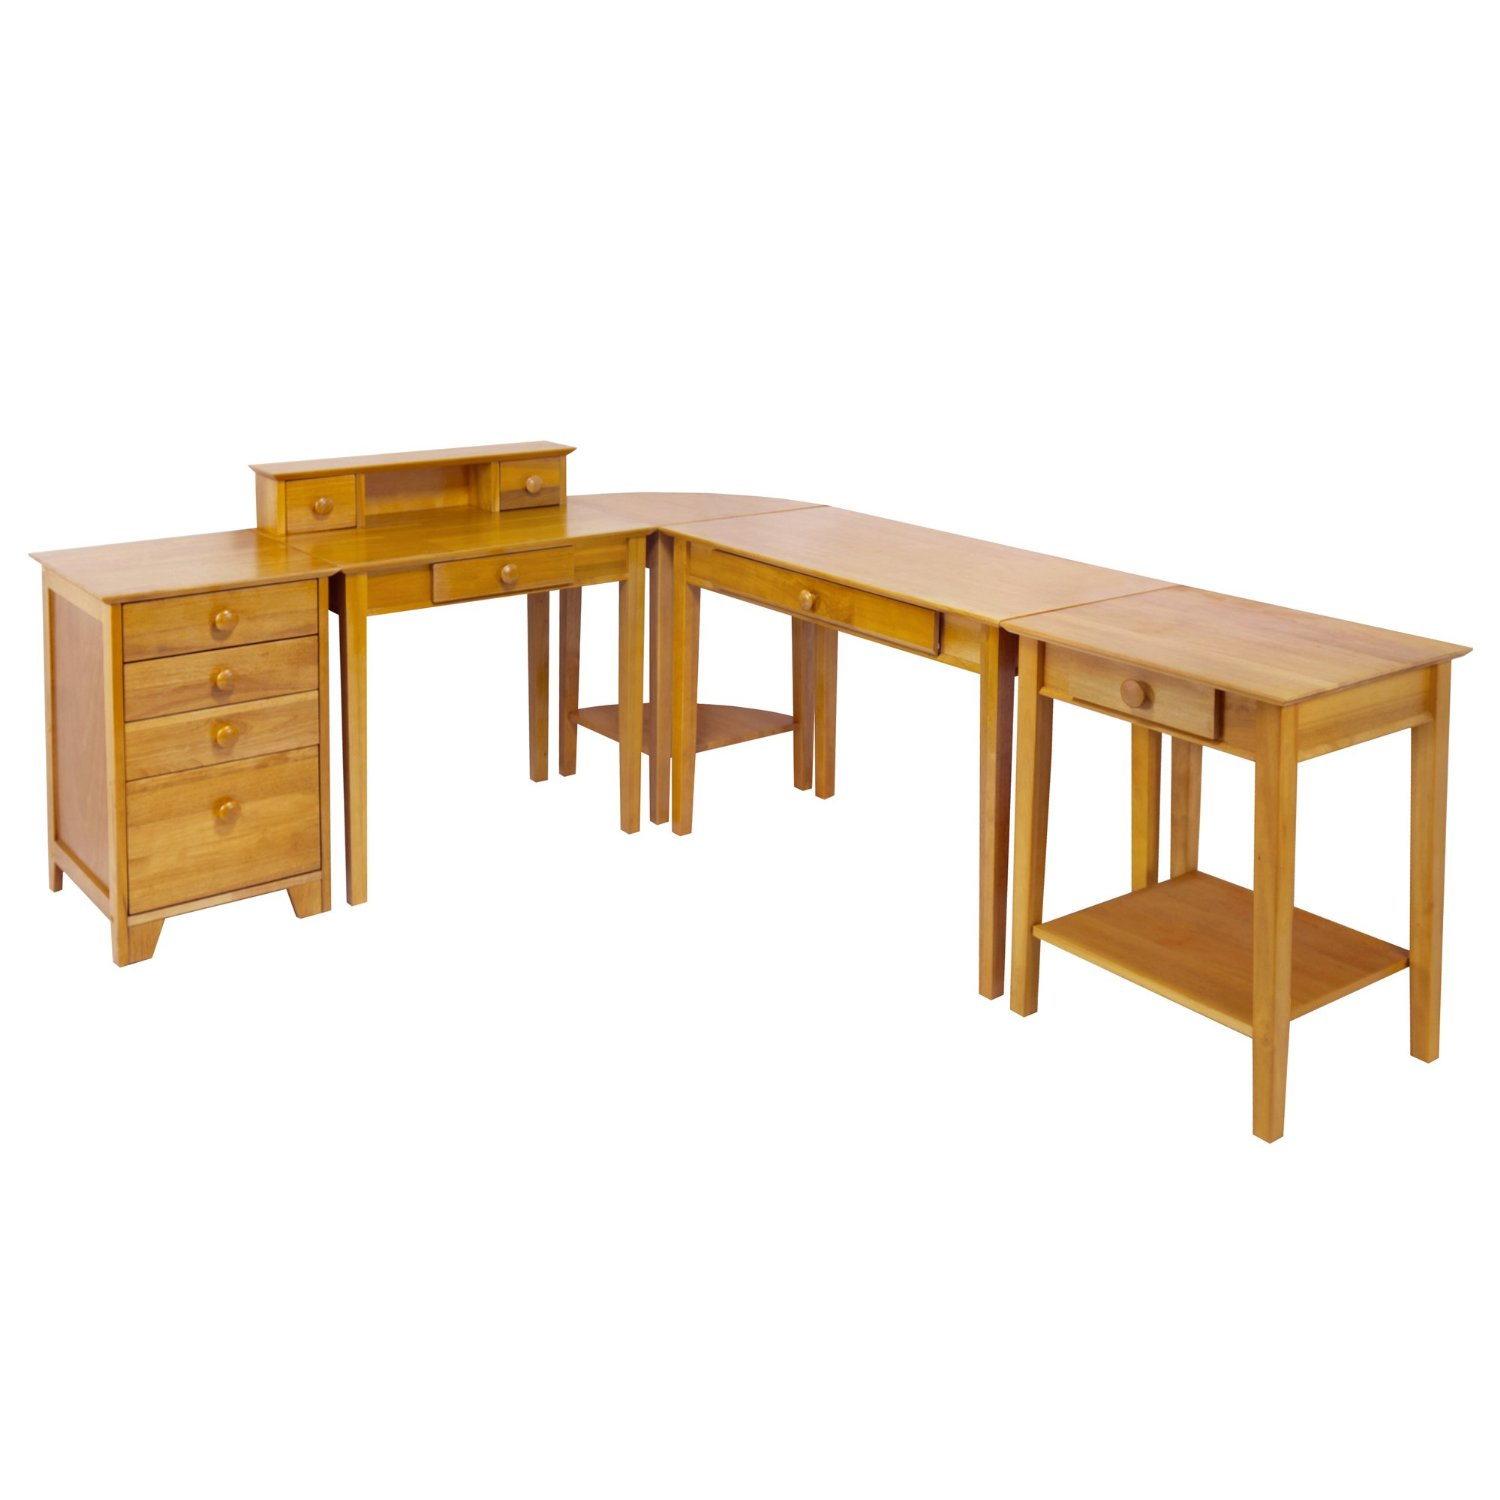 Office Desk Set 5-Piece by Winsome Studio Includes Computer Desk, Corner Table and Printer Stand, Crafted from Durable Wood